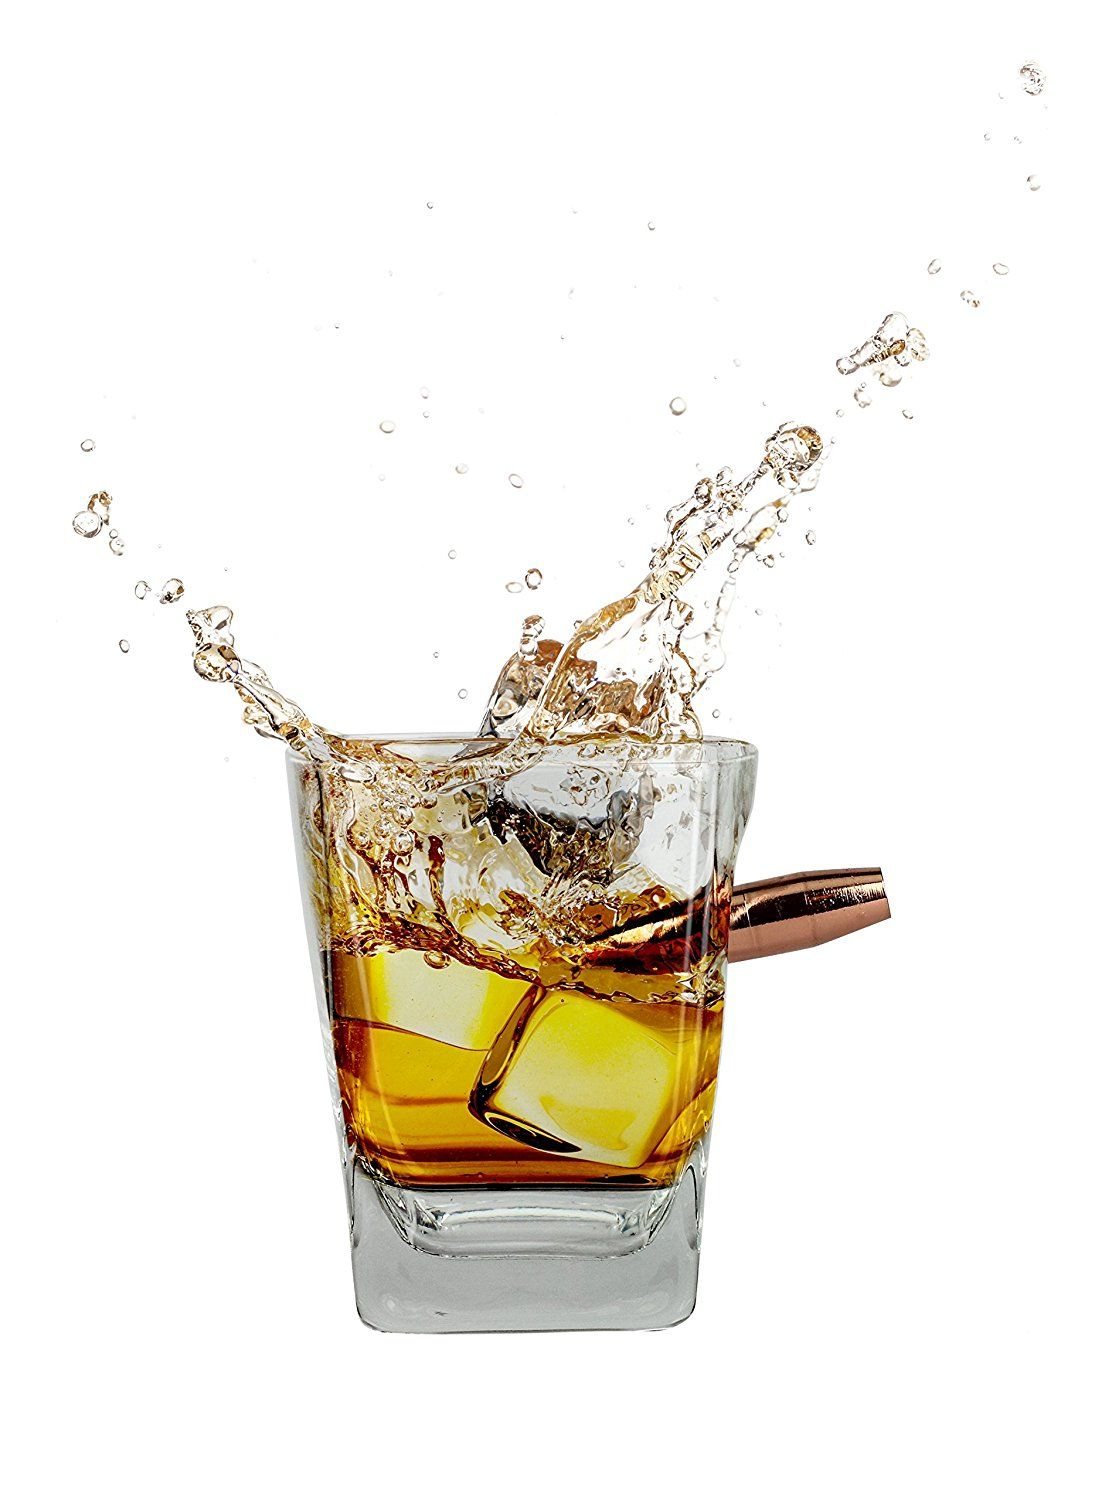 Top 10 Best Bullet Glasses (Scotch & Whiskey Glasses Gift Ideas ...